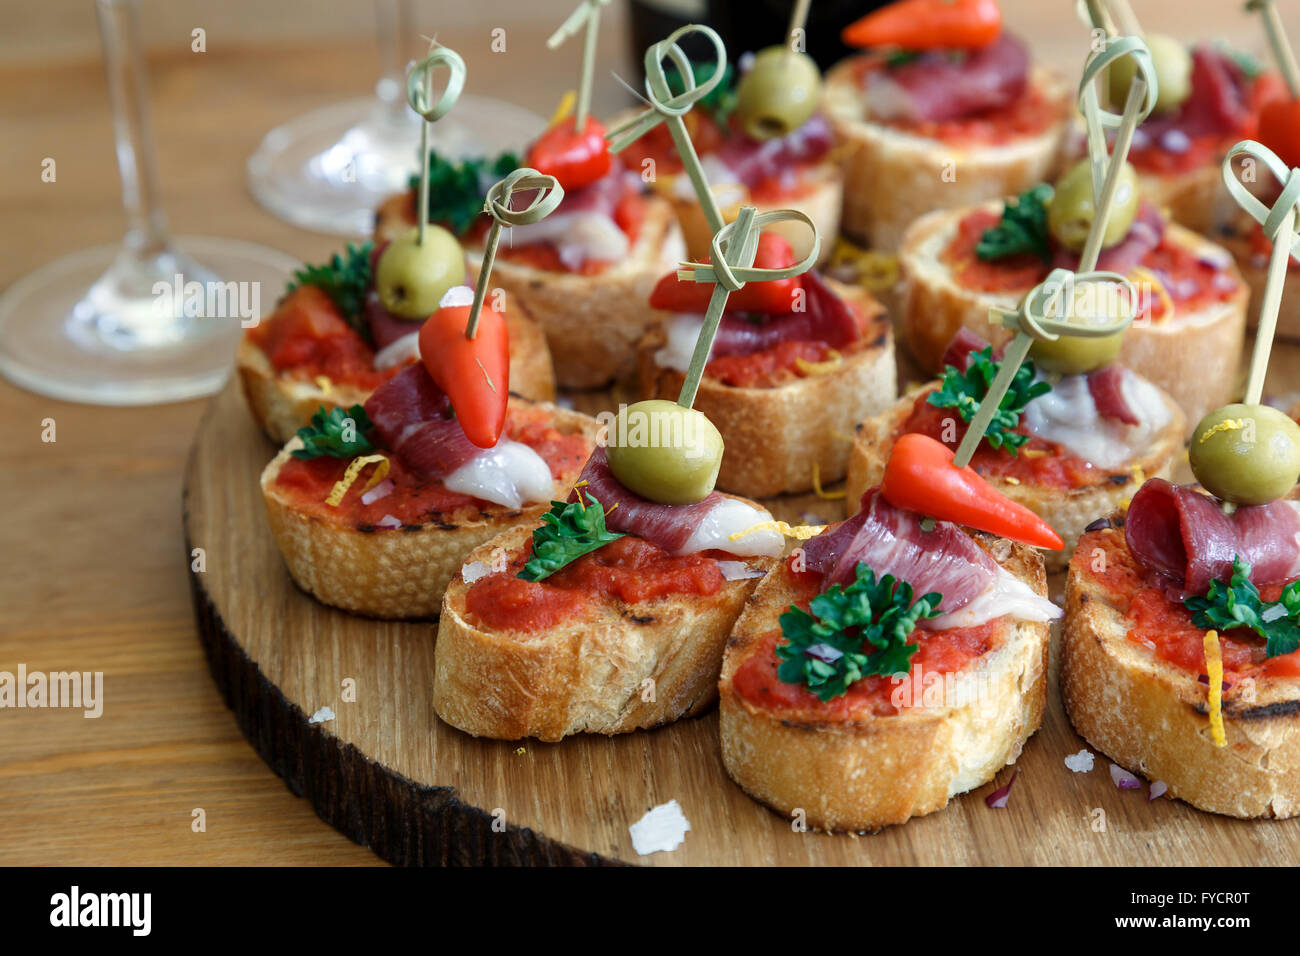 pinchos tapas spanish canapes party finger food stock. Black Bedroom Furniture Sets. Home Design Ideas